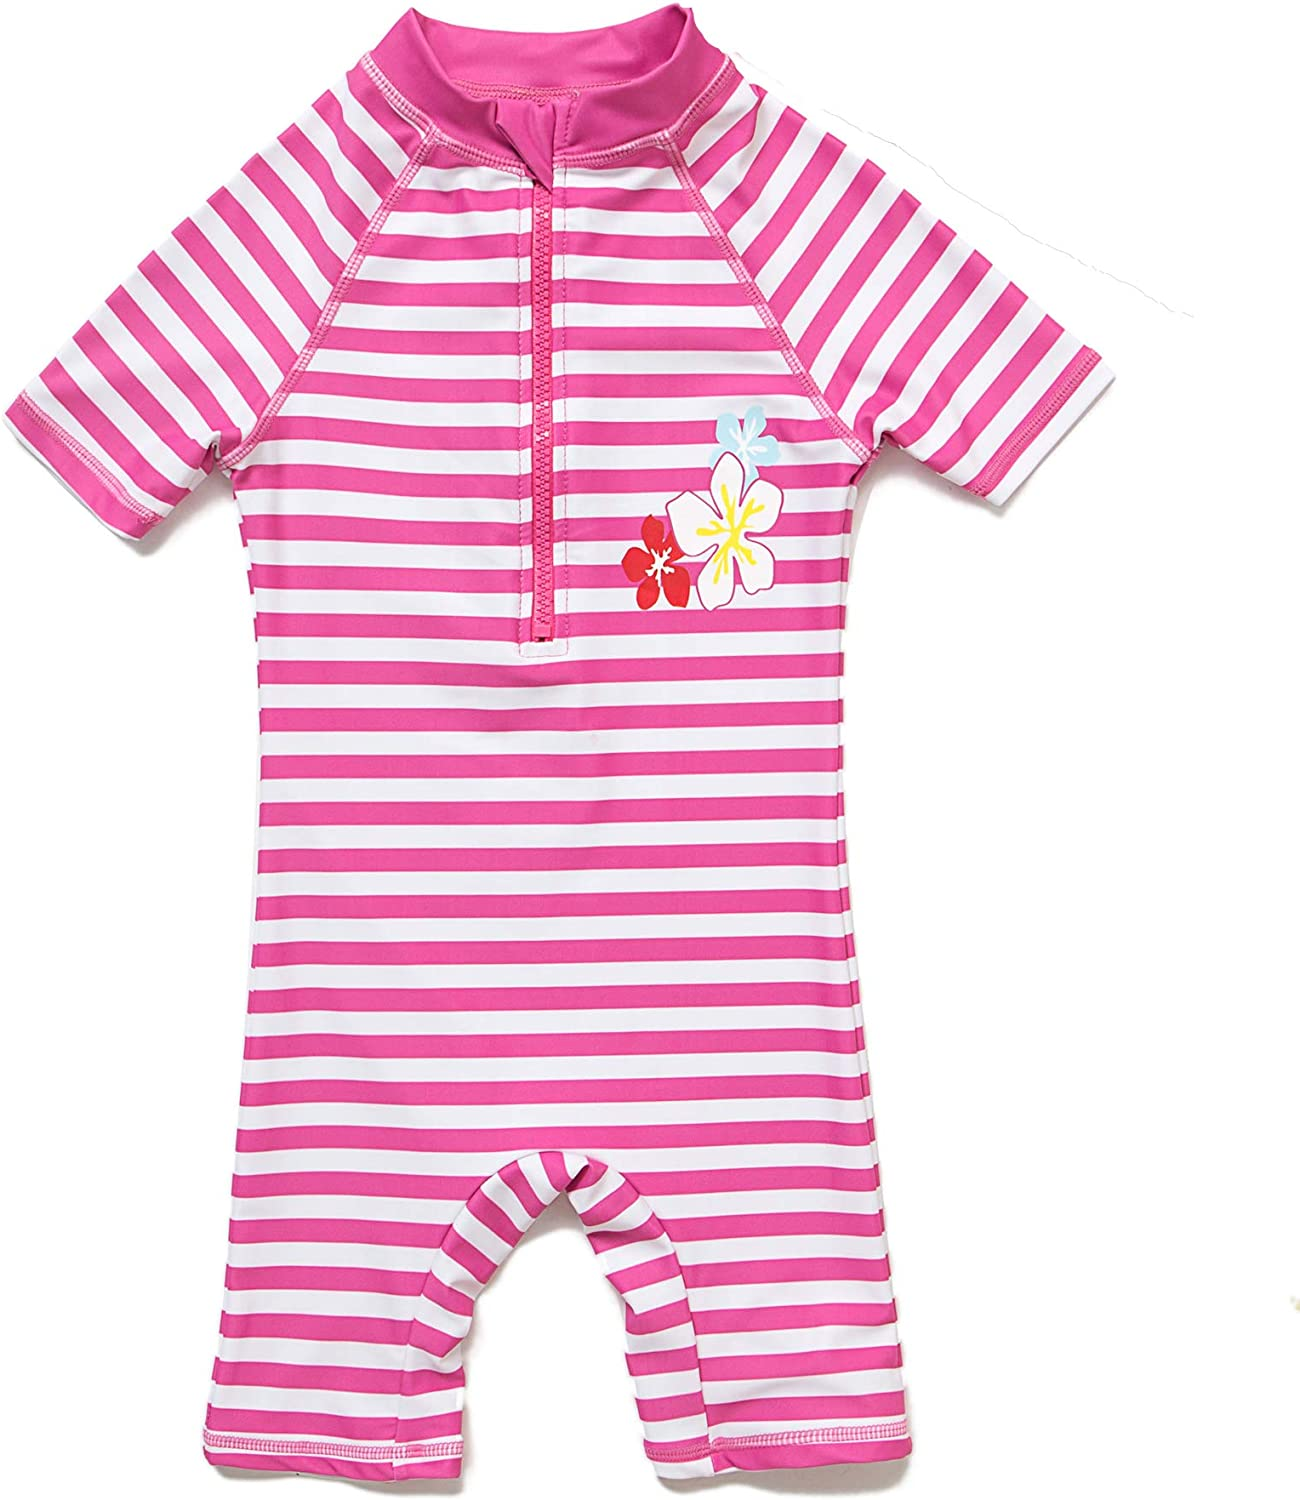 Baby Girls Sunsuit UPF 50+ Sun Protection One Pieces Short Sleeves Swimwear with Sun Hat(Pink Stripe,6 9Months)